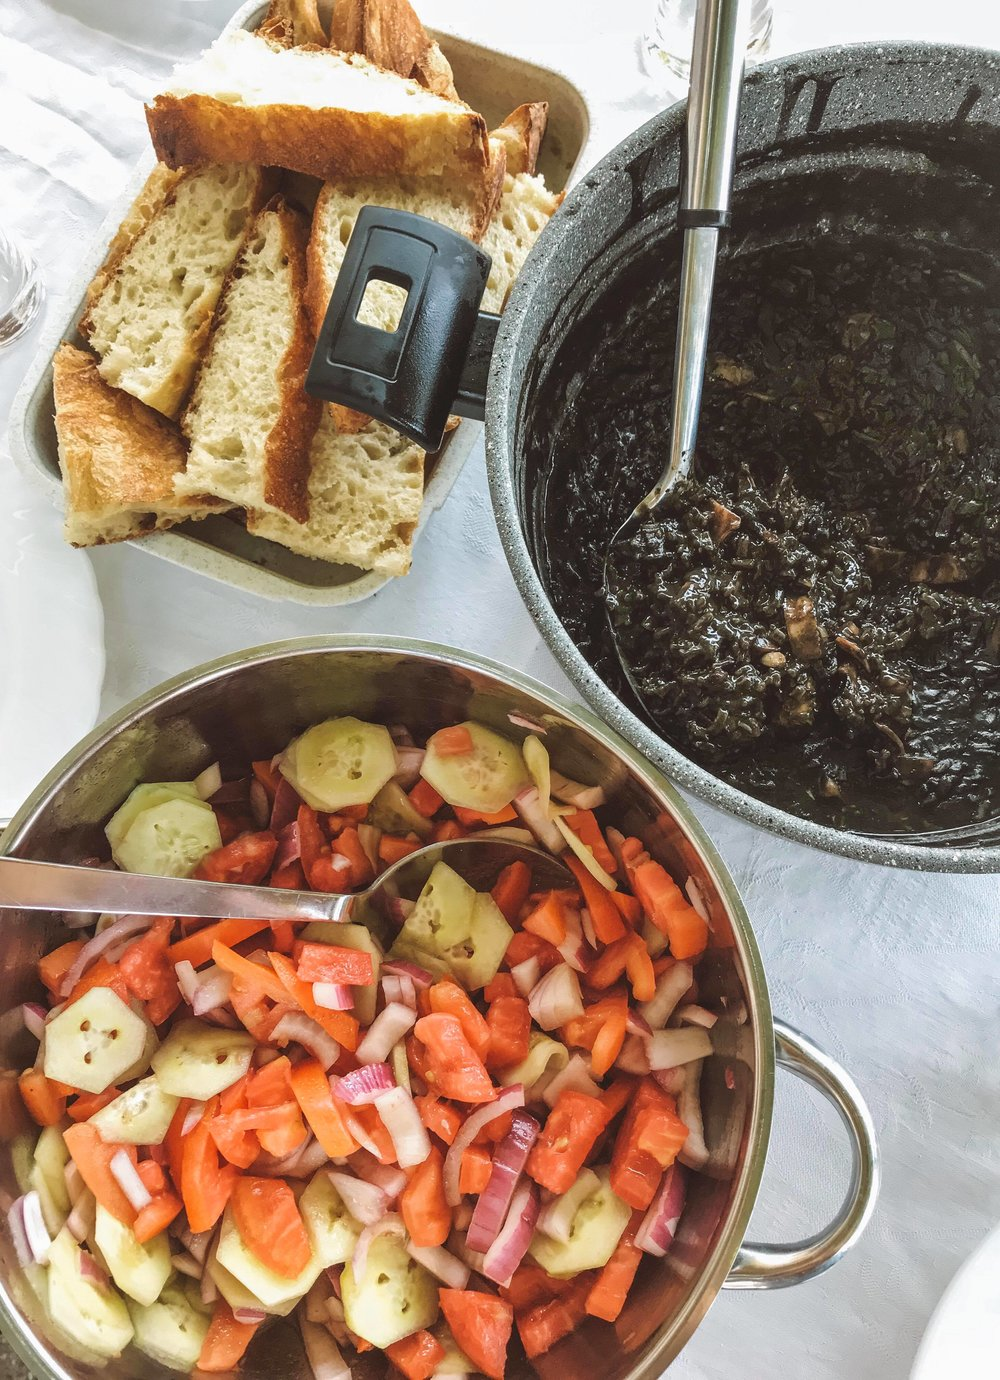 Crni rižot - black cuttlefish risotto. A popular dish in the Dalmatia region, which gets its trademark black colour from the addition of squid link. Served with a salad, and fresh bread to wipe your plate clean with!